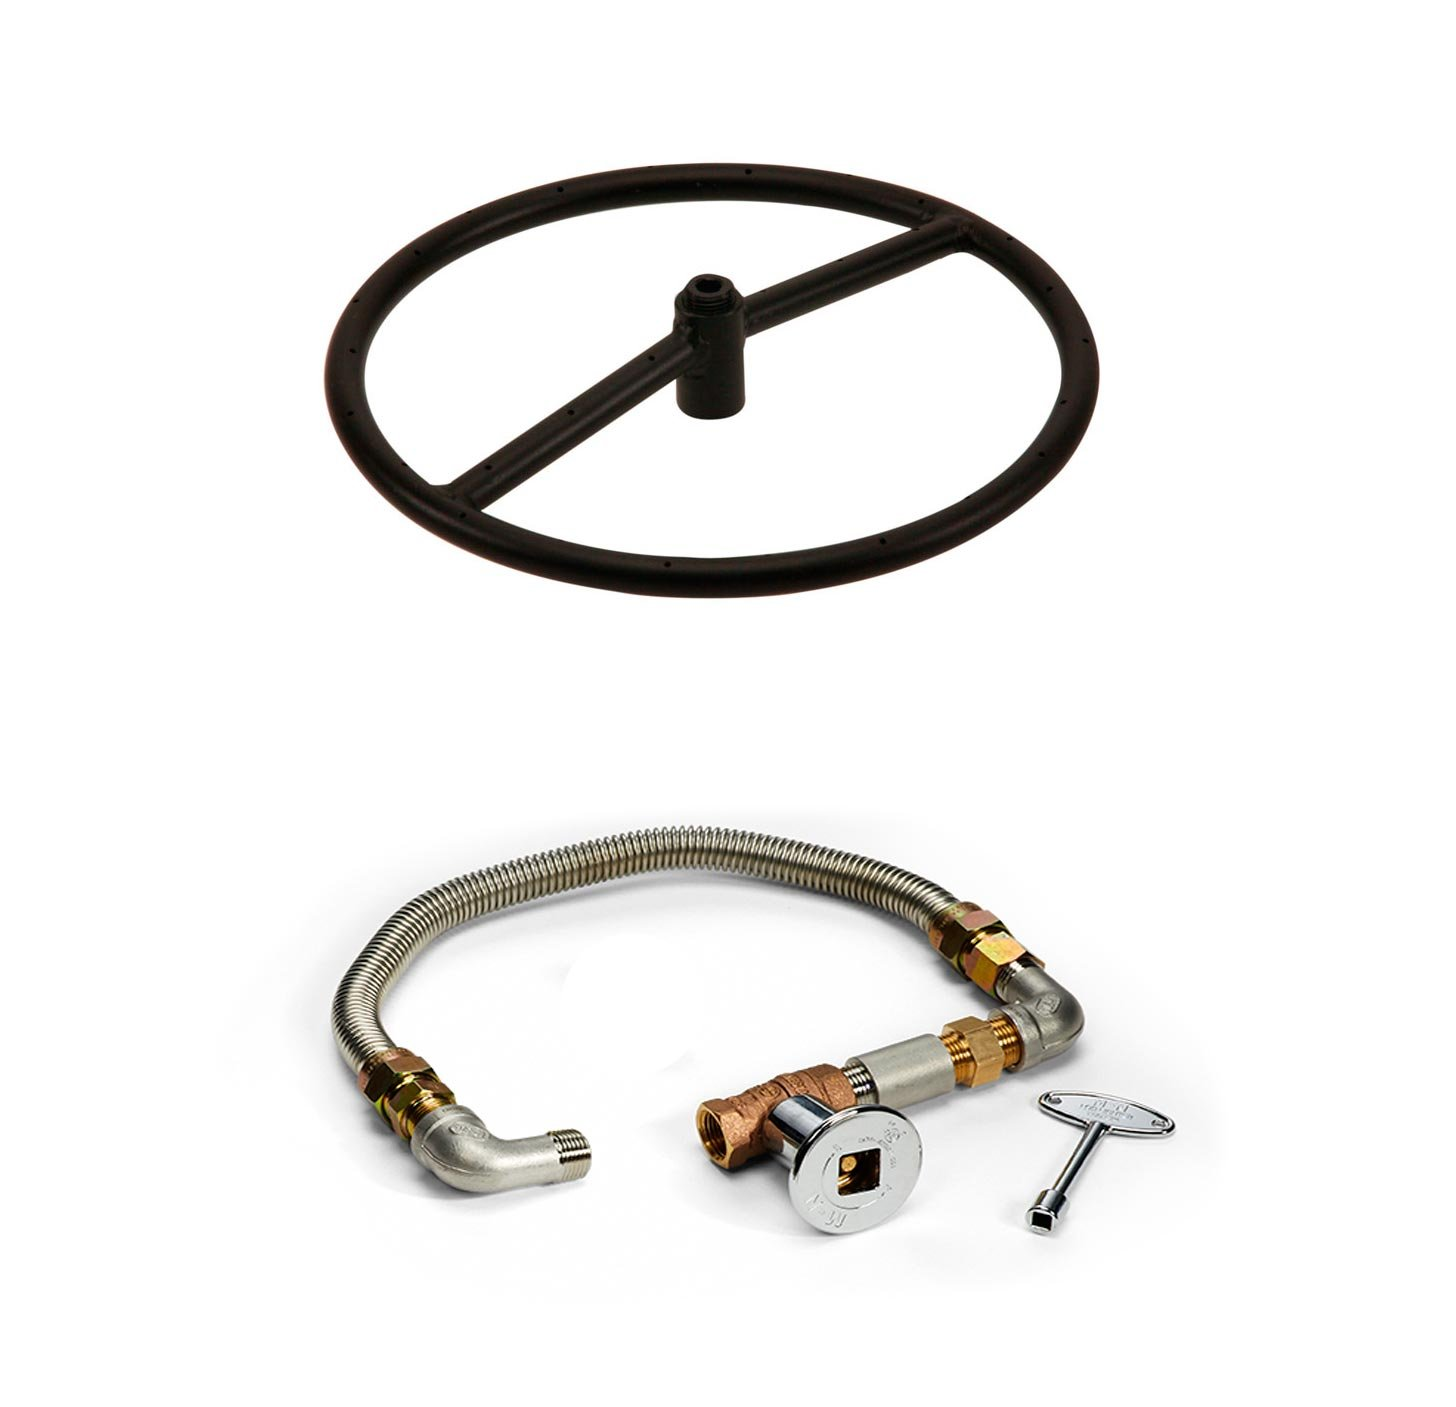 Hearth Products Controls Match Light Fire Pit Kit (FP12 KIT), 12-Inch, Natural Gas by Hearth Products Controls